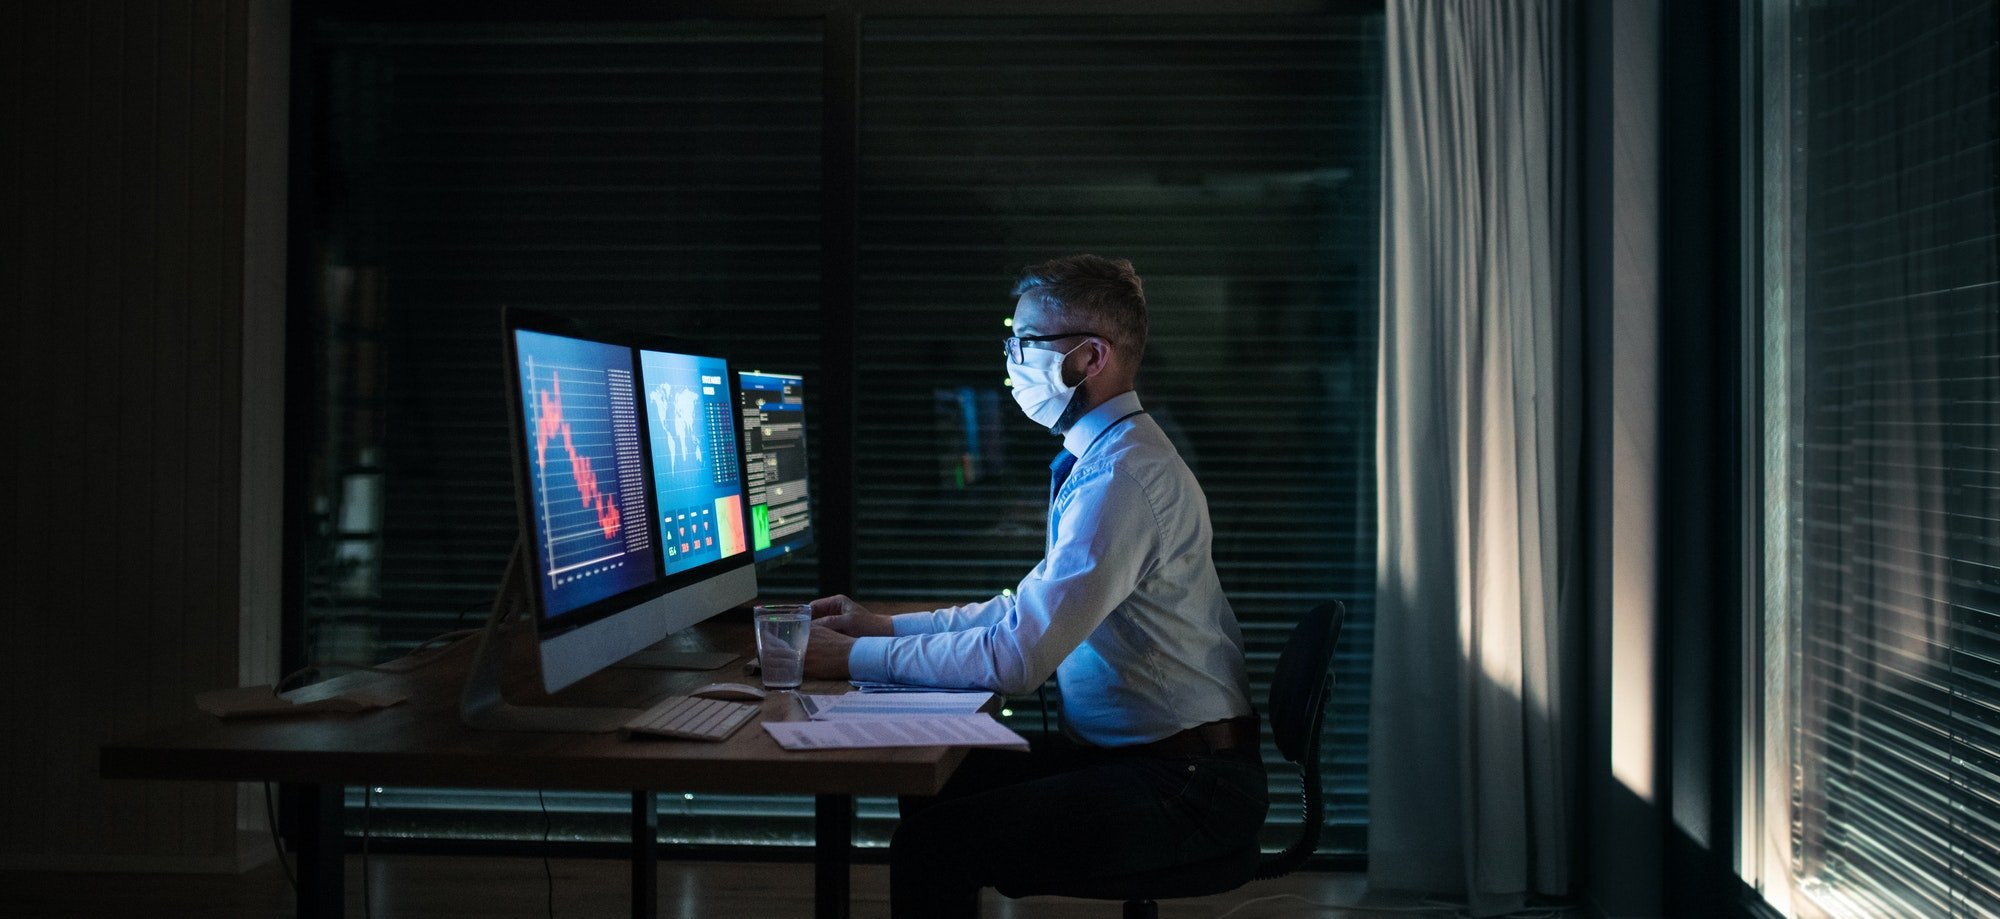 Businessman with computer sitting at desk, working late. Financial crisis concept